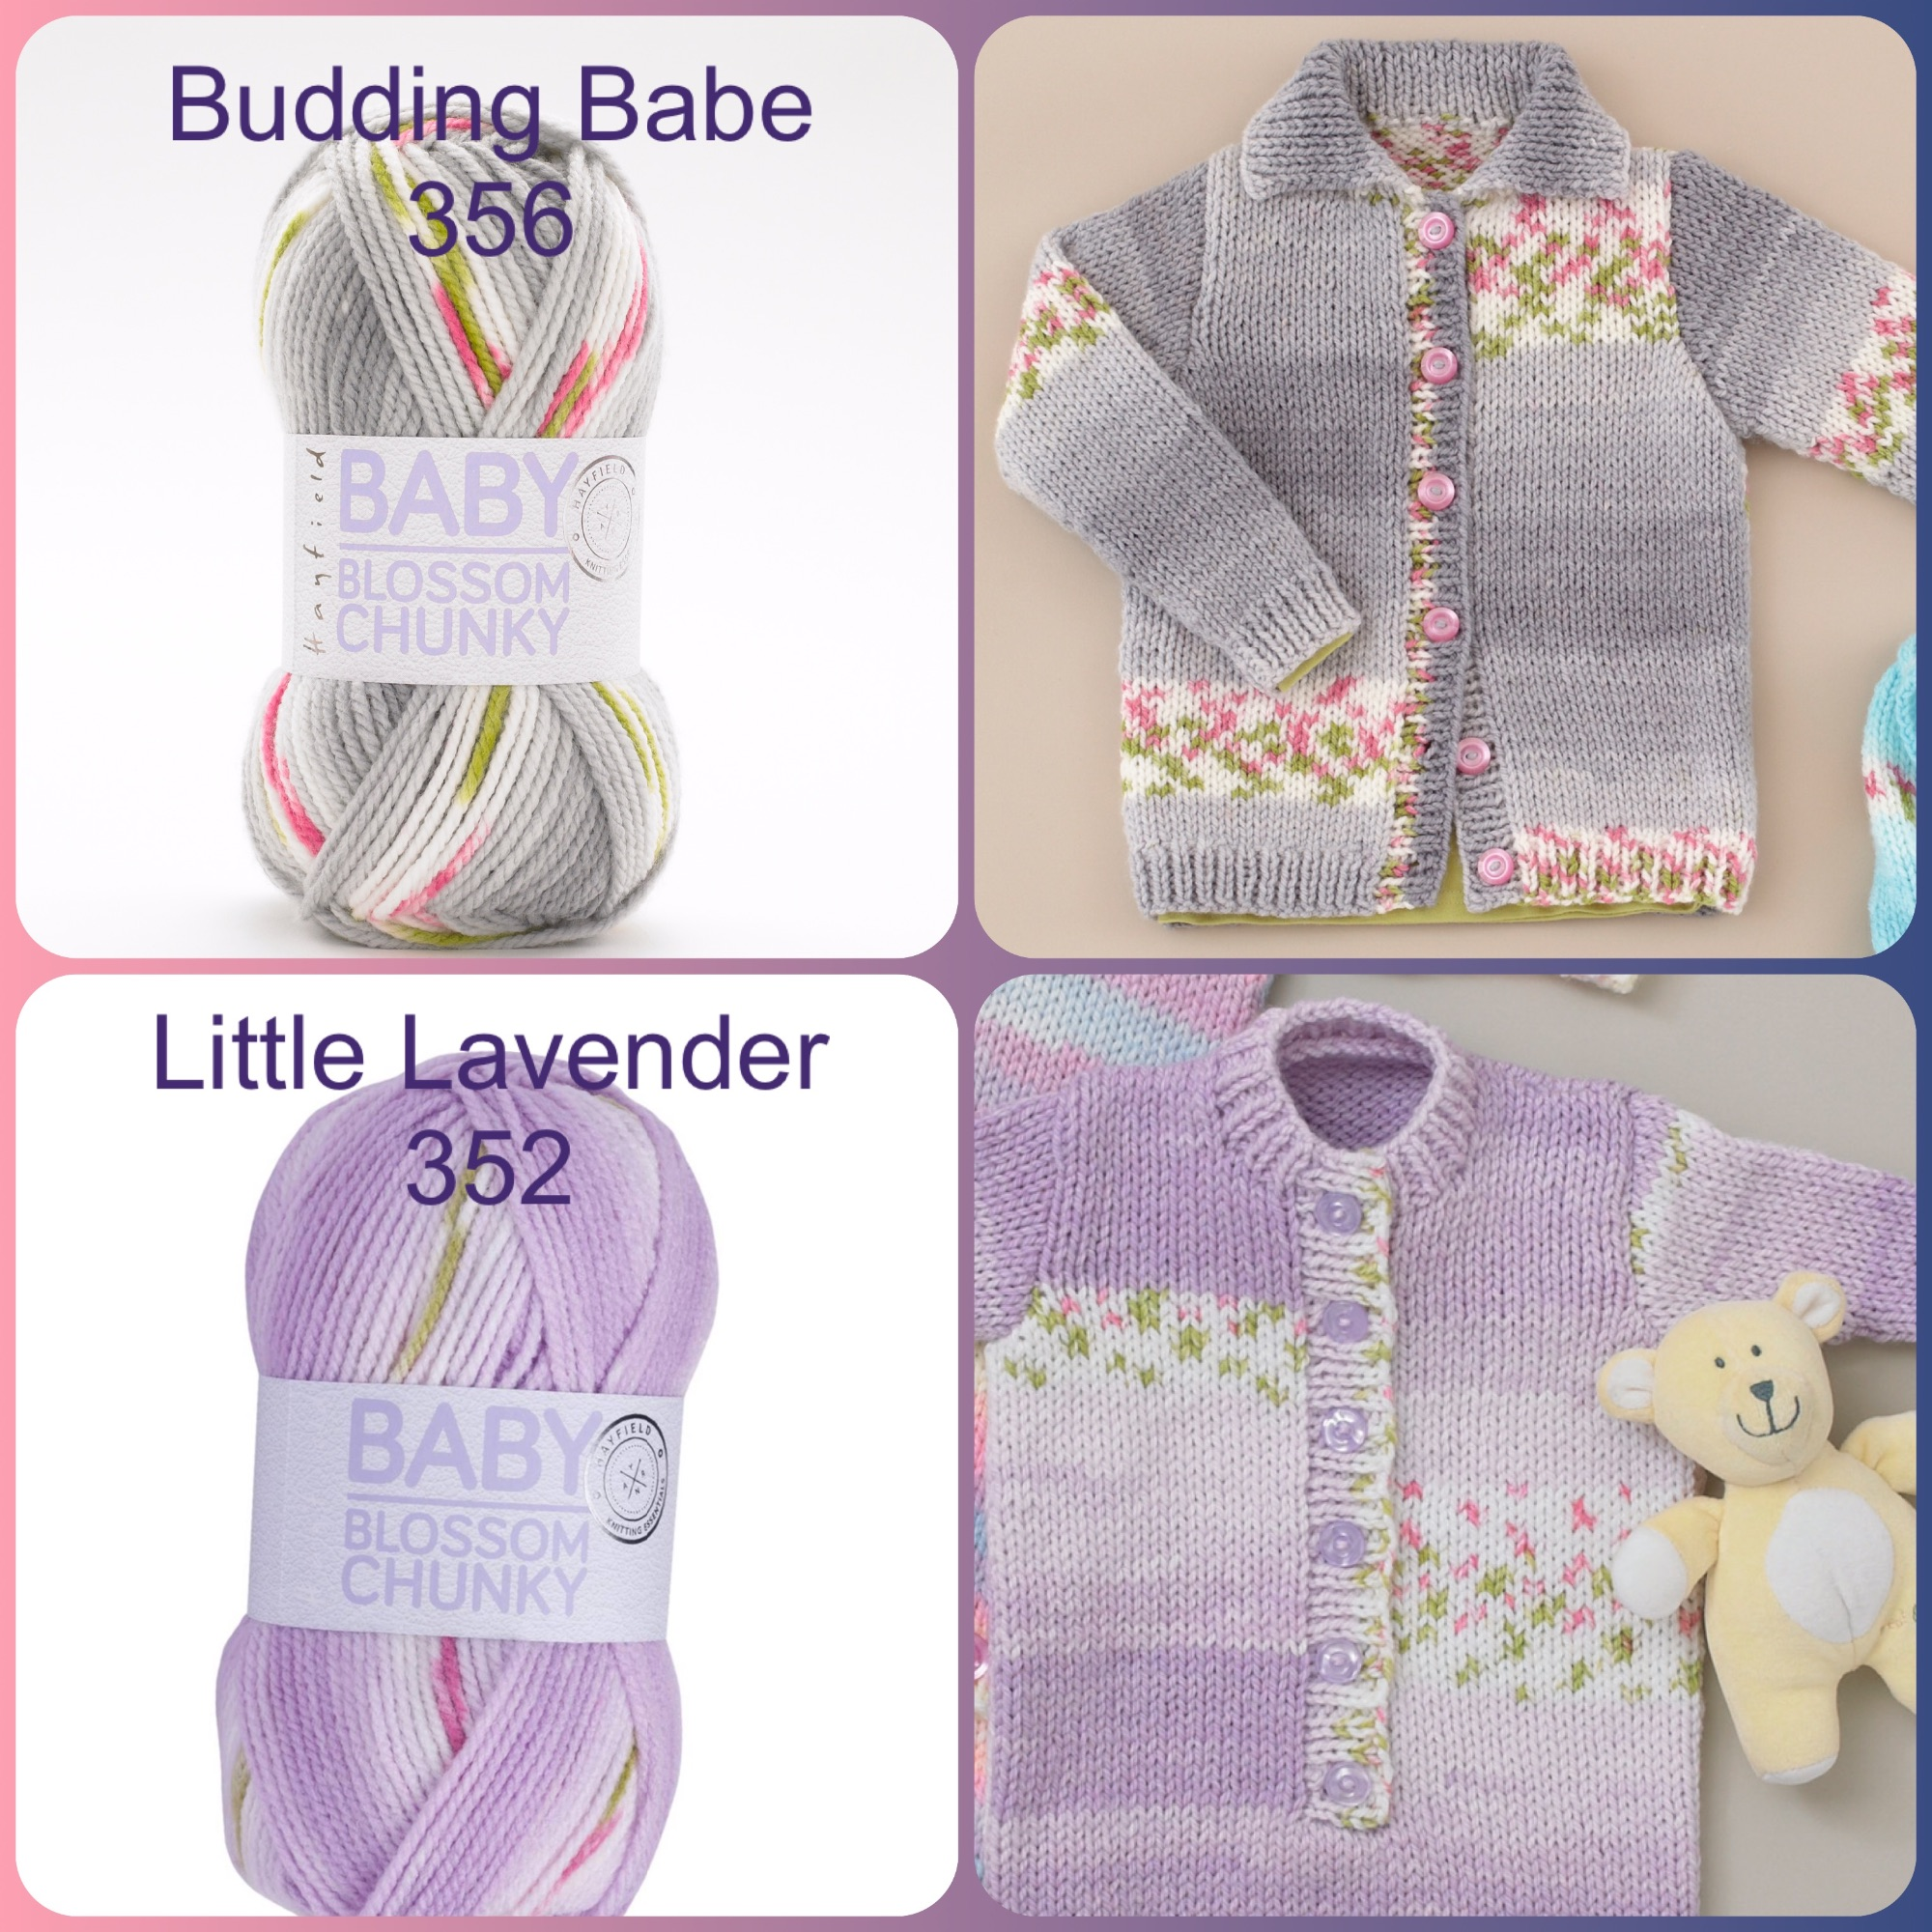 Hayfield baby blossom chunky yarn budding babe little lavender colours and